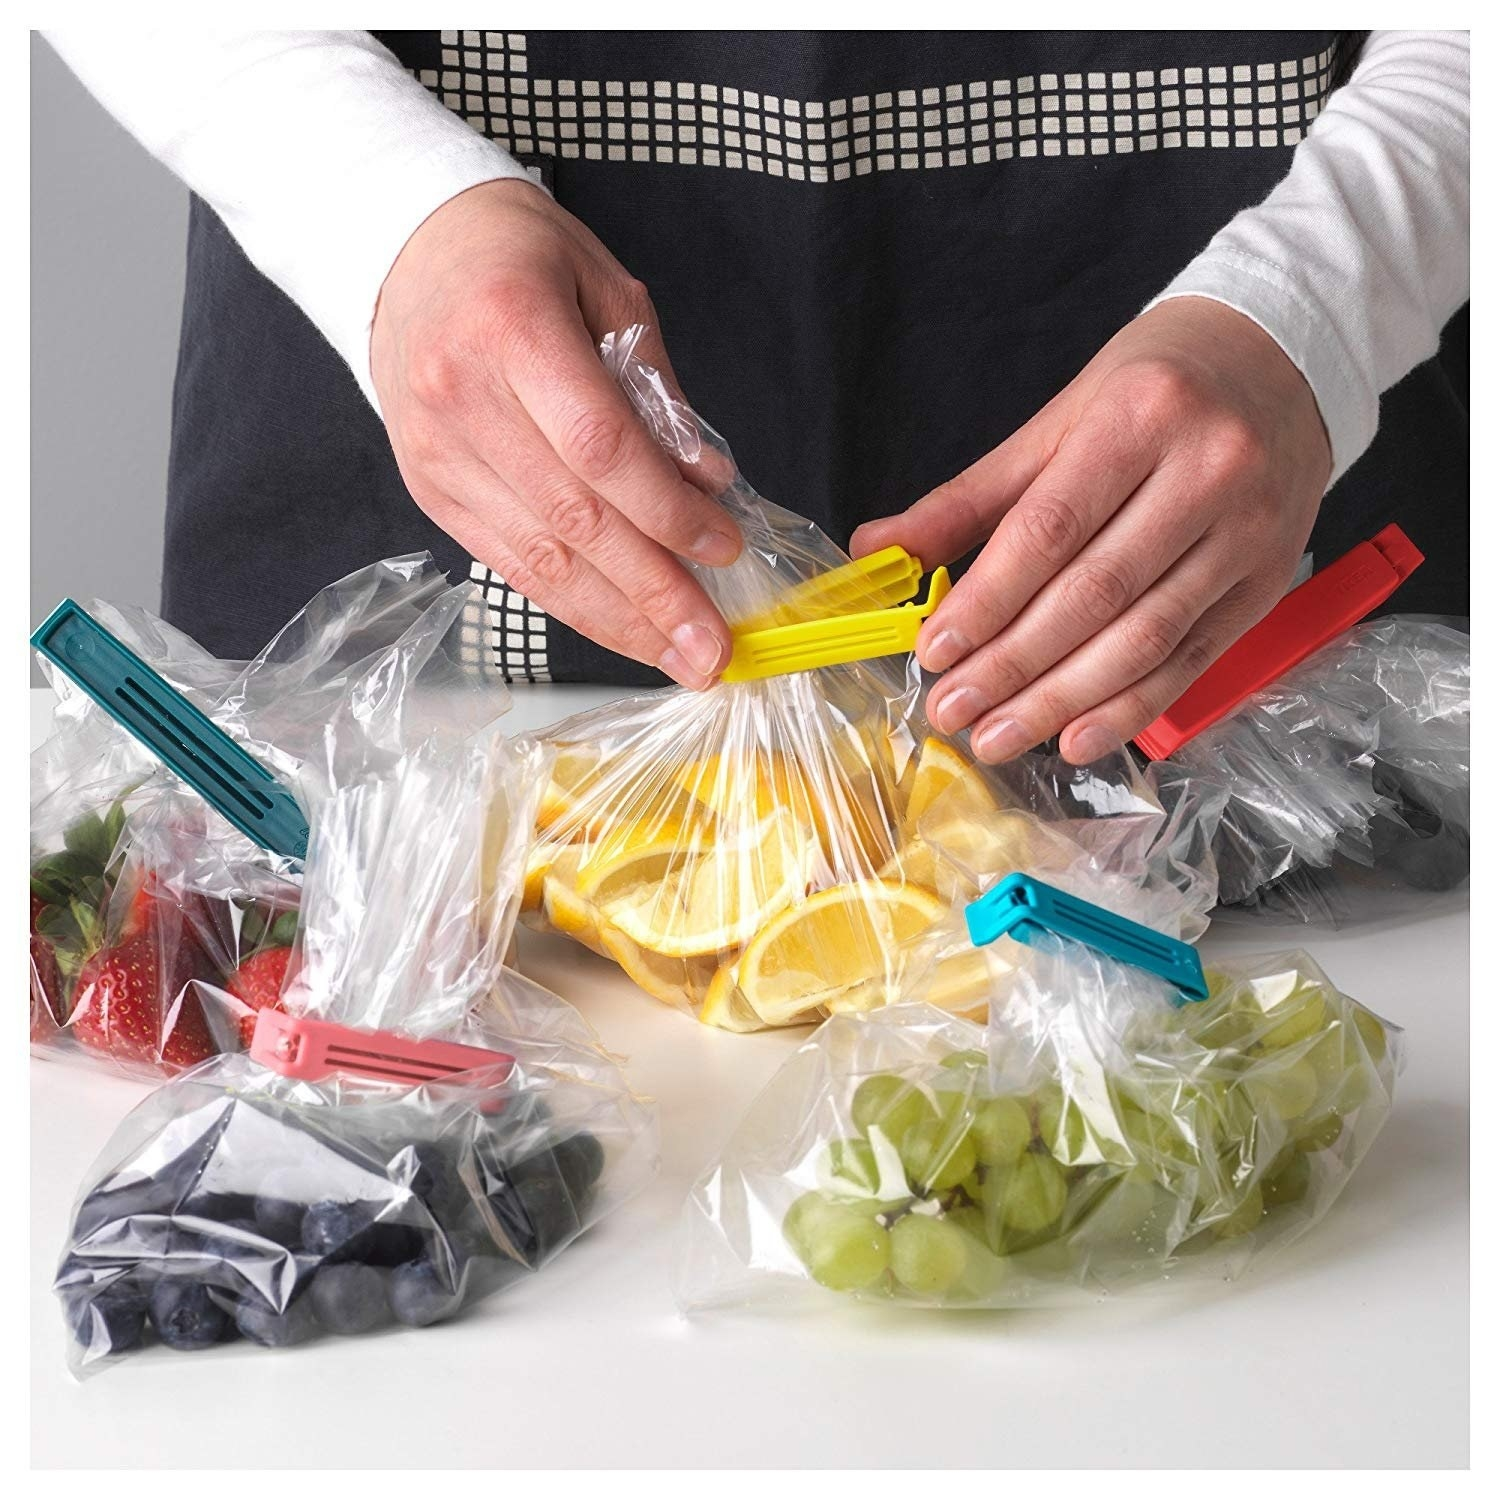 A person sealing bags of fruit with the clips.